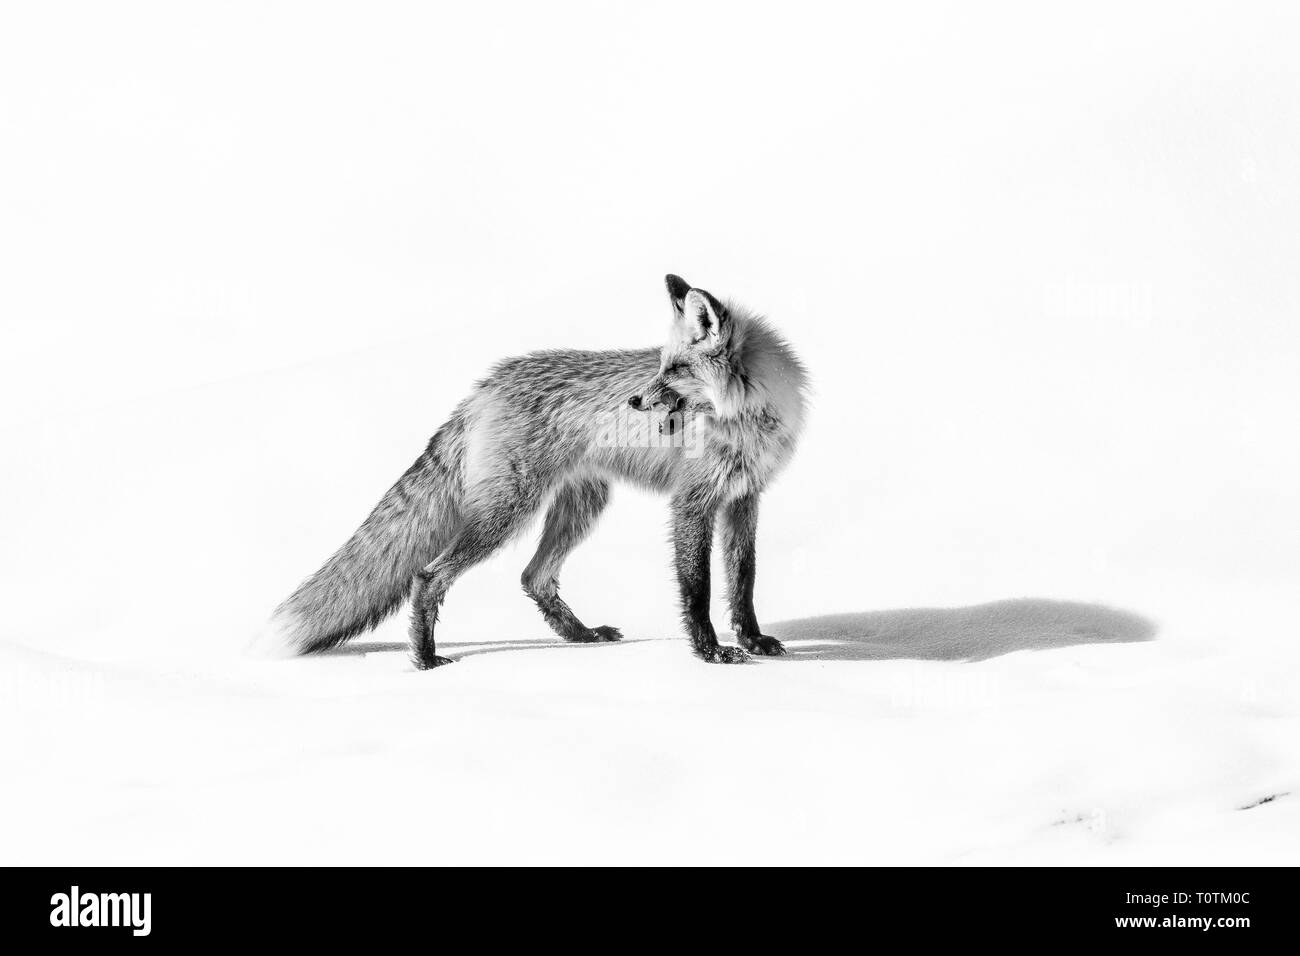 black and white portrait of a red fox on snow looking backwards over his shoulder with ears perked listening intently for his next meal - Stock Image